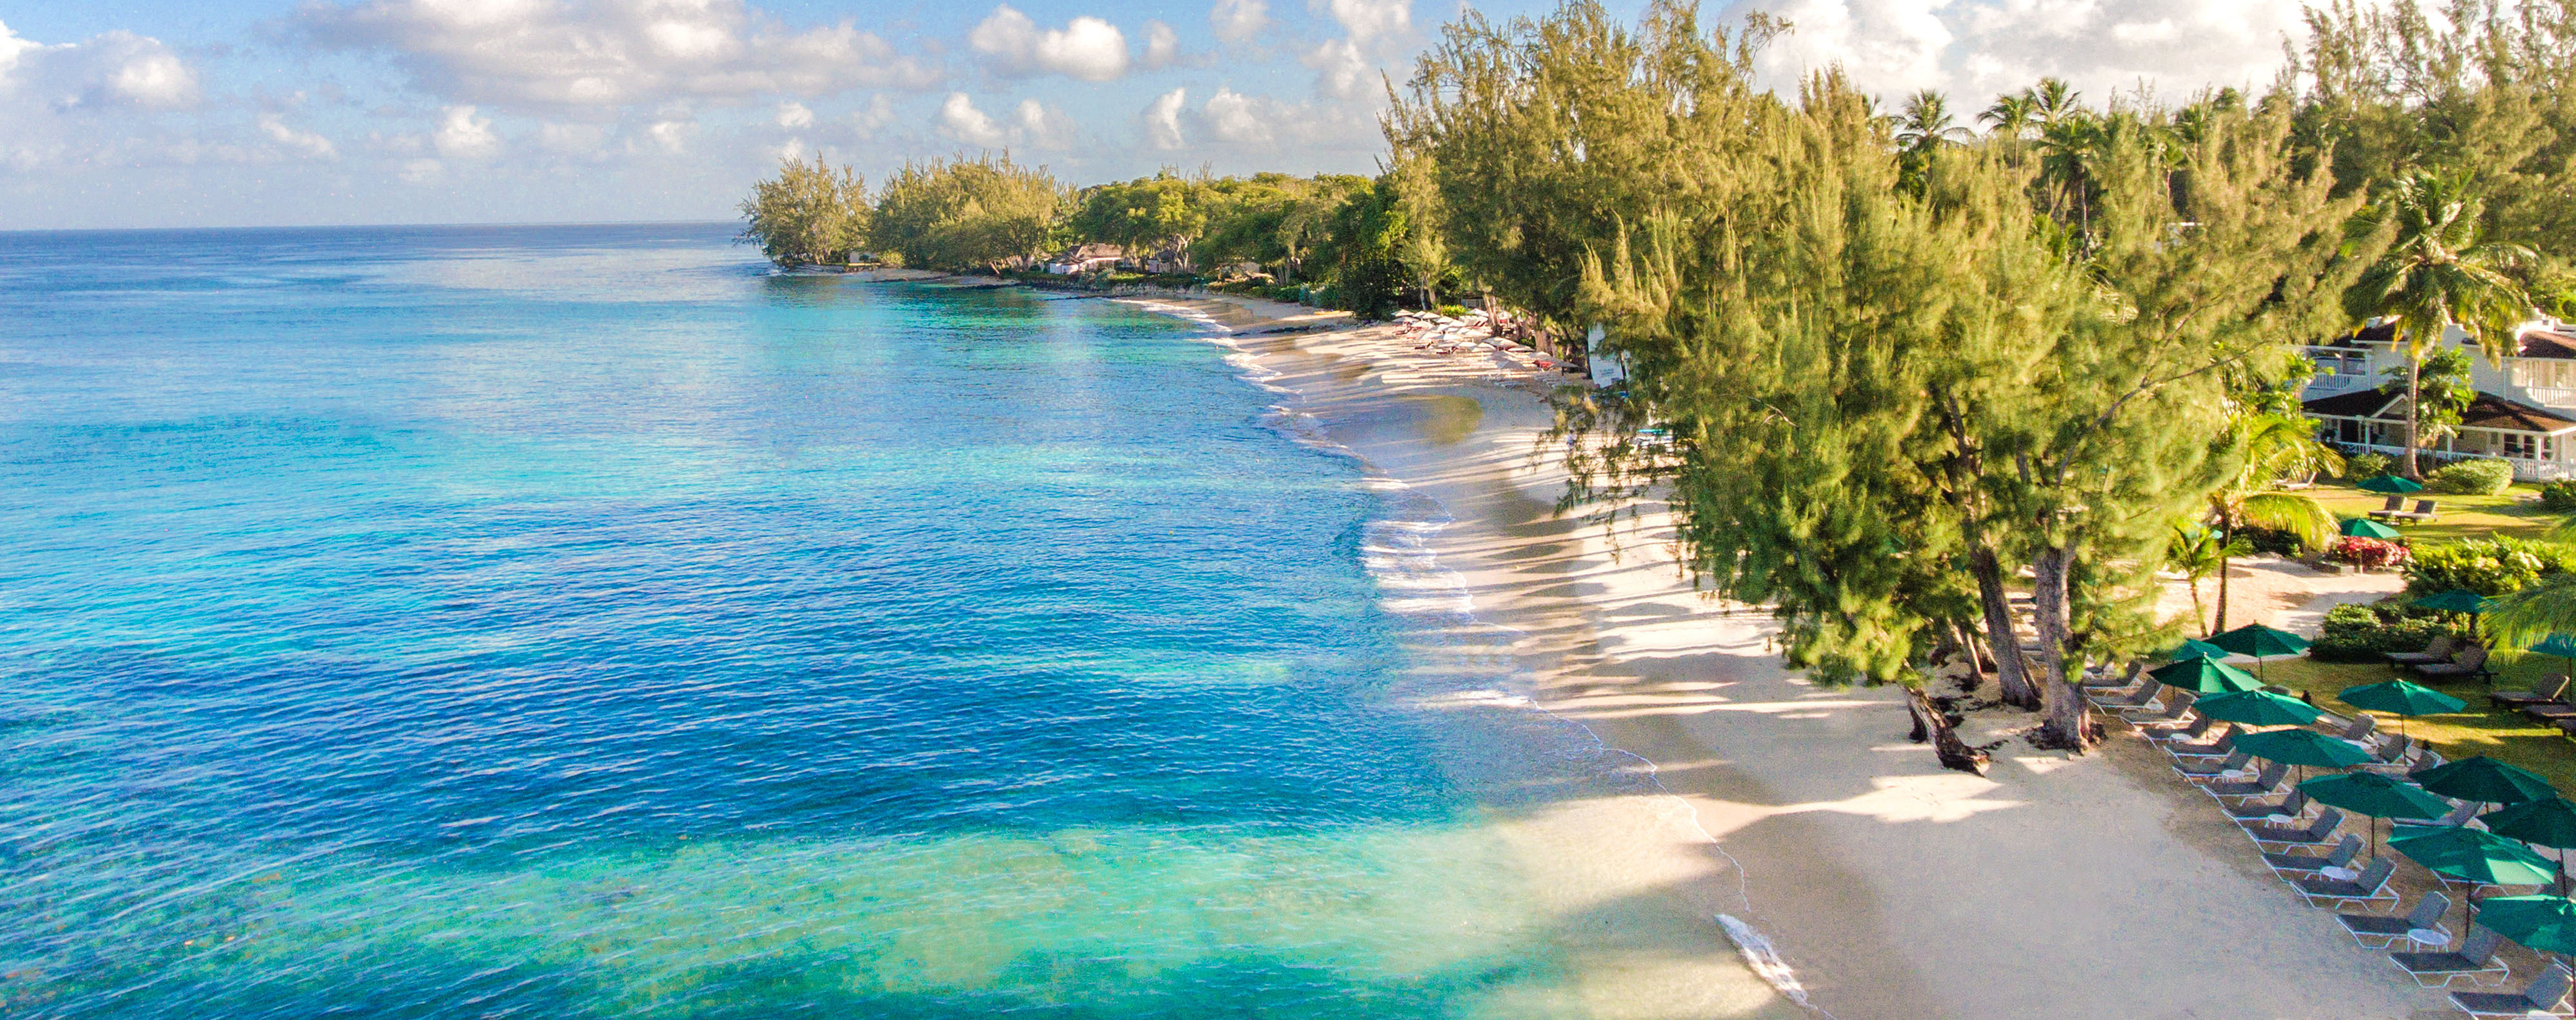 coral-reef-club-barbados-beach